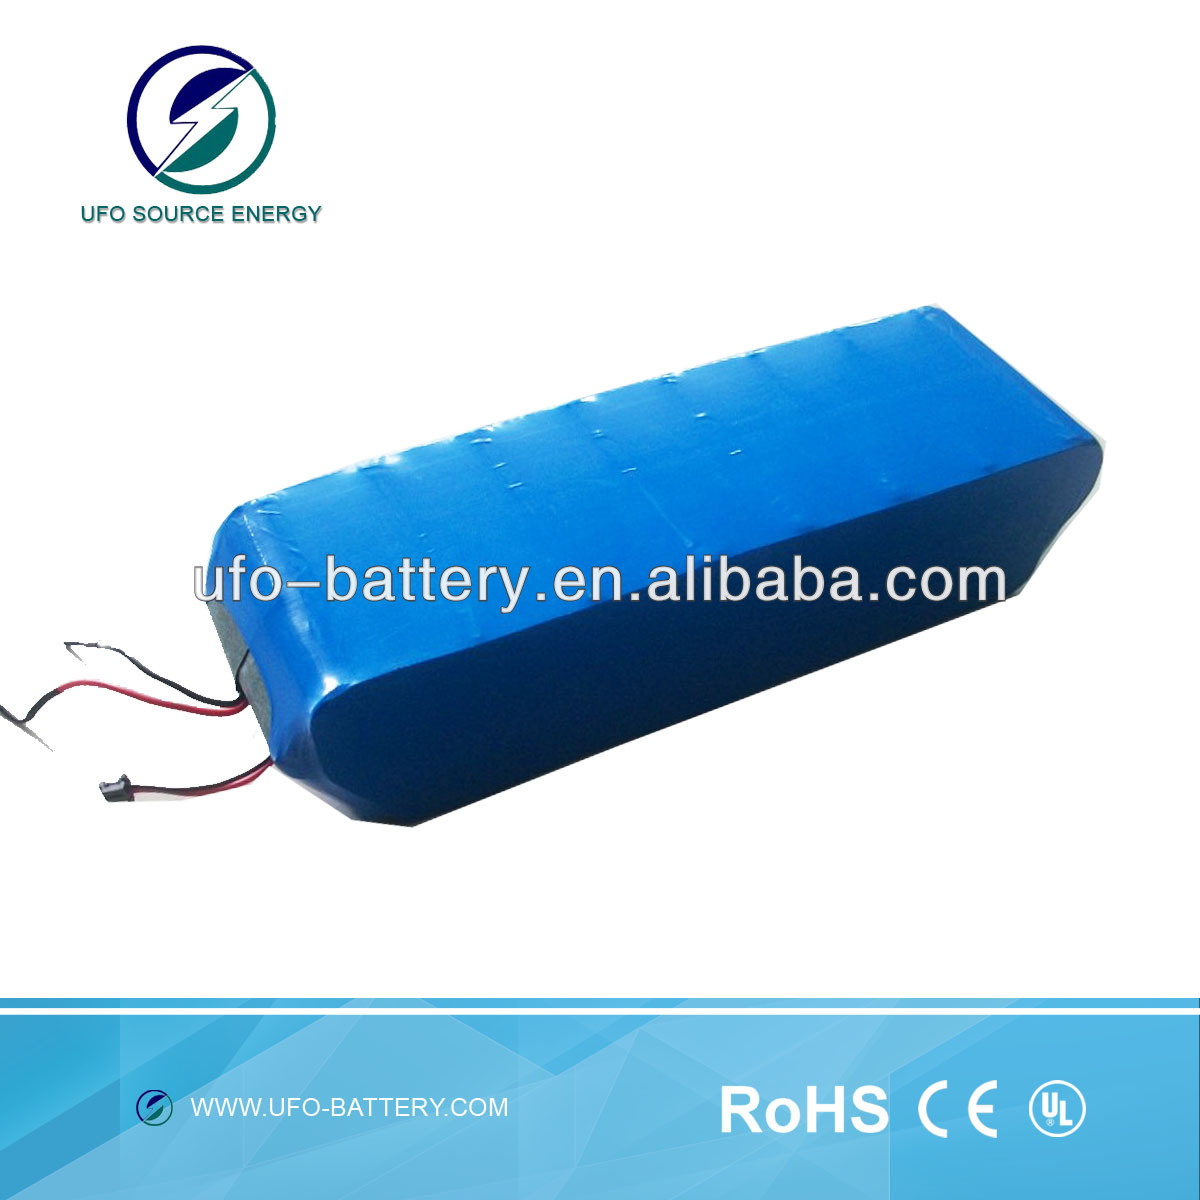 Lifepo4 A123 Anr26650 Battery Mod, rechargeable battery pack 25.9v 20Ah with AW IMR26650 Battery